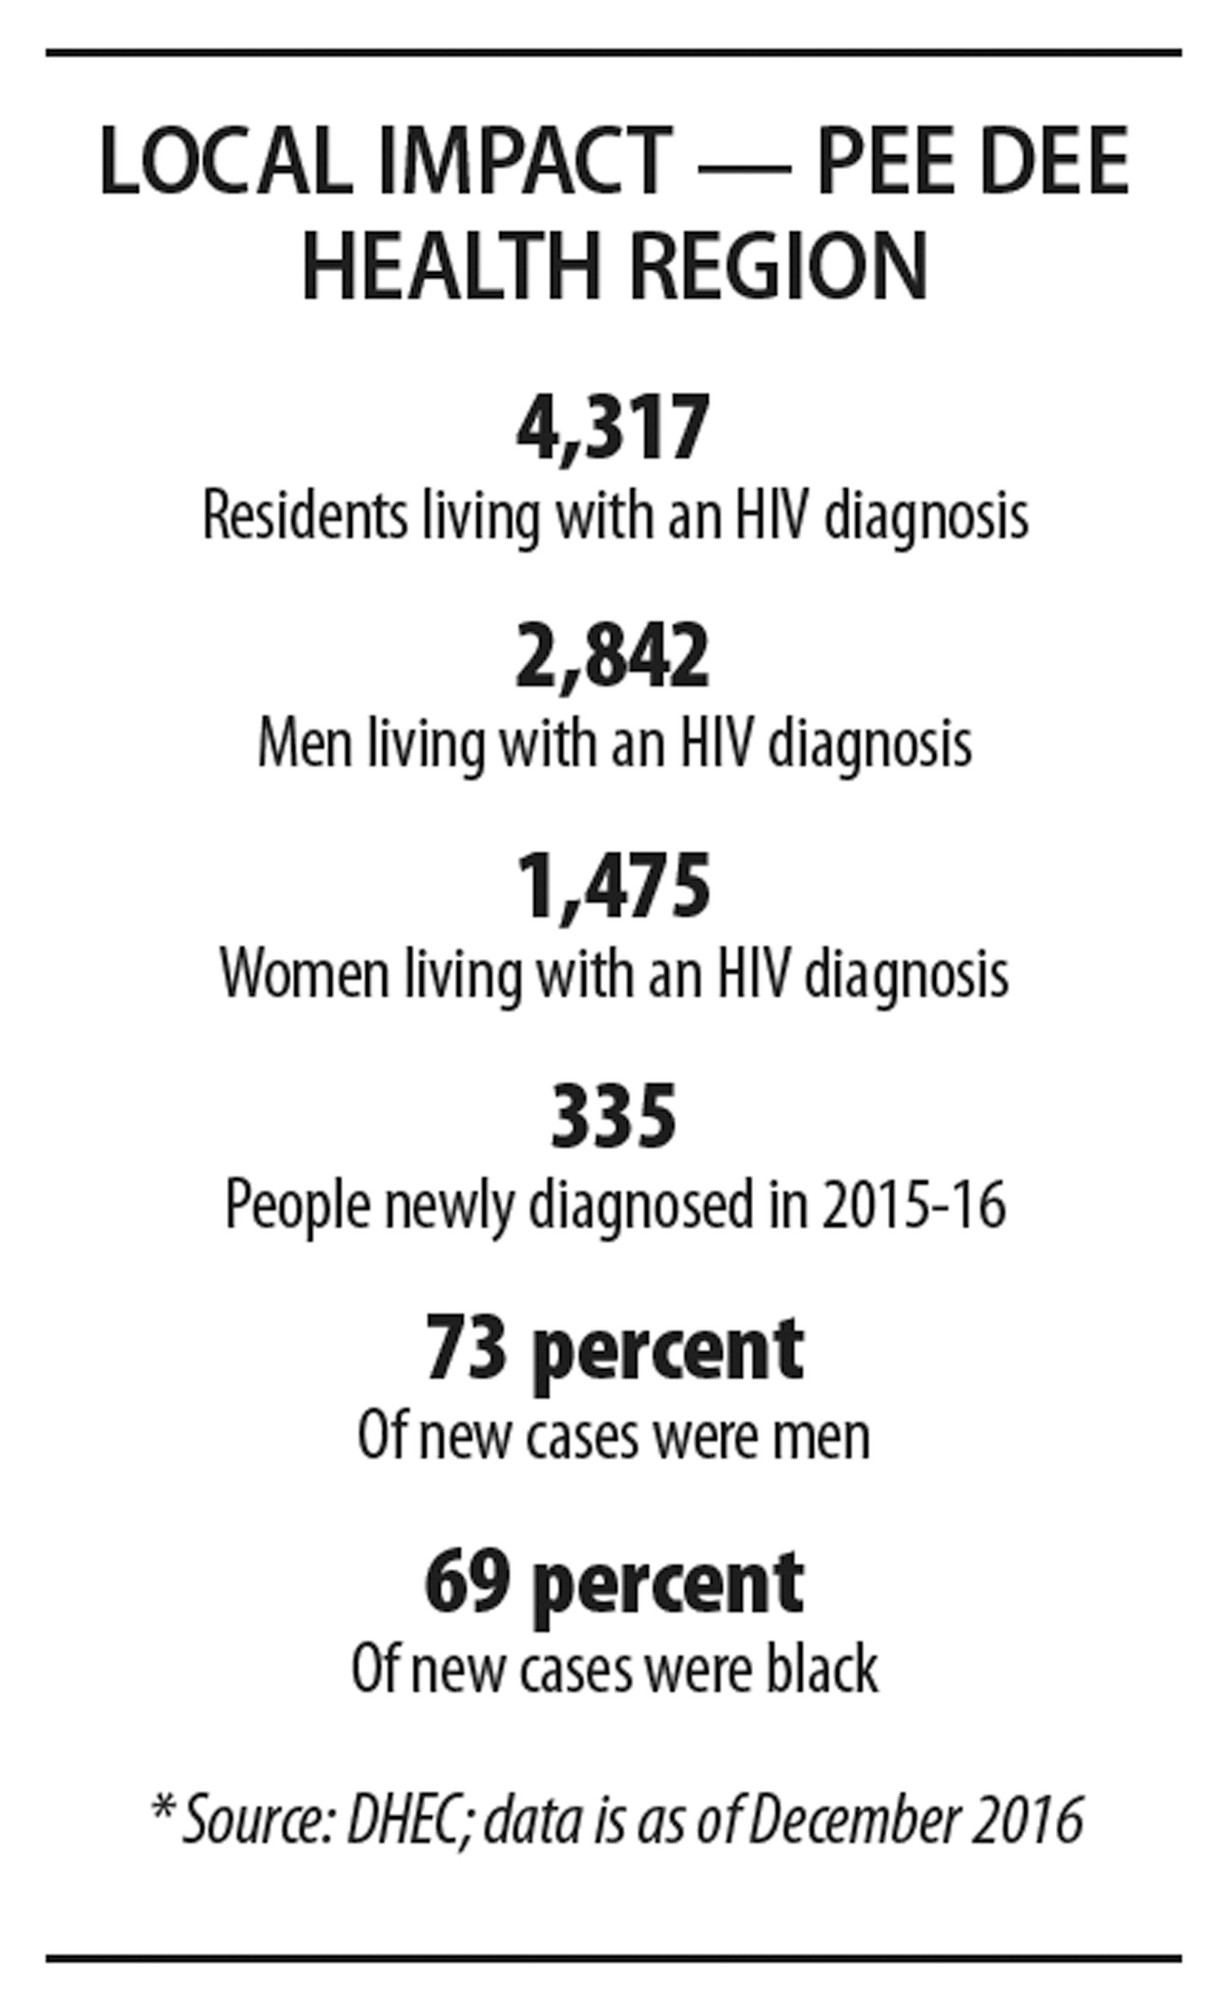 Sumter Walgreens offering free HIV testing | The Sumter Item